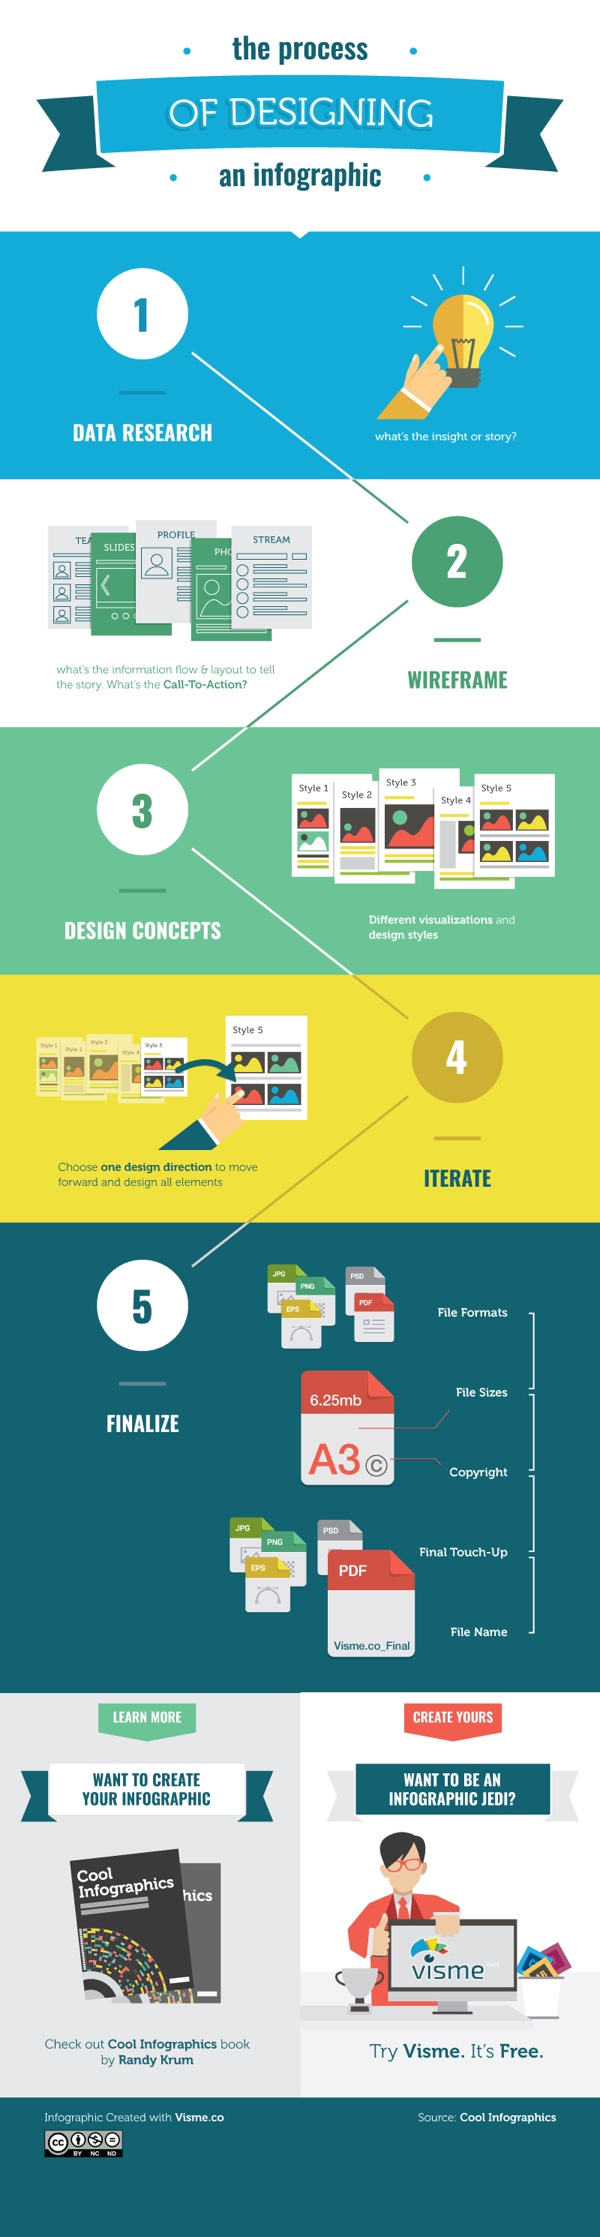 The Process of Designing an Infographic